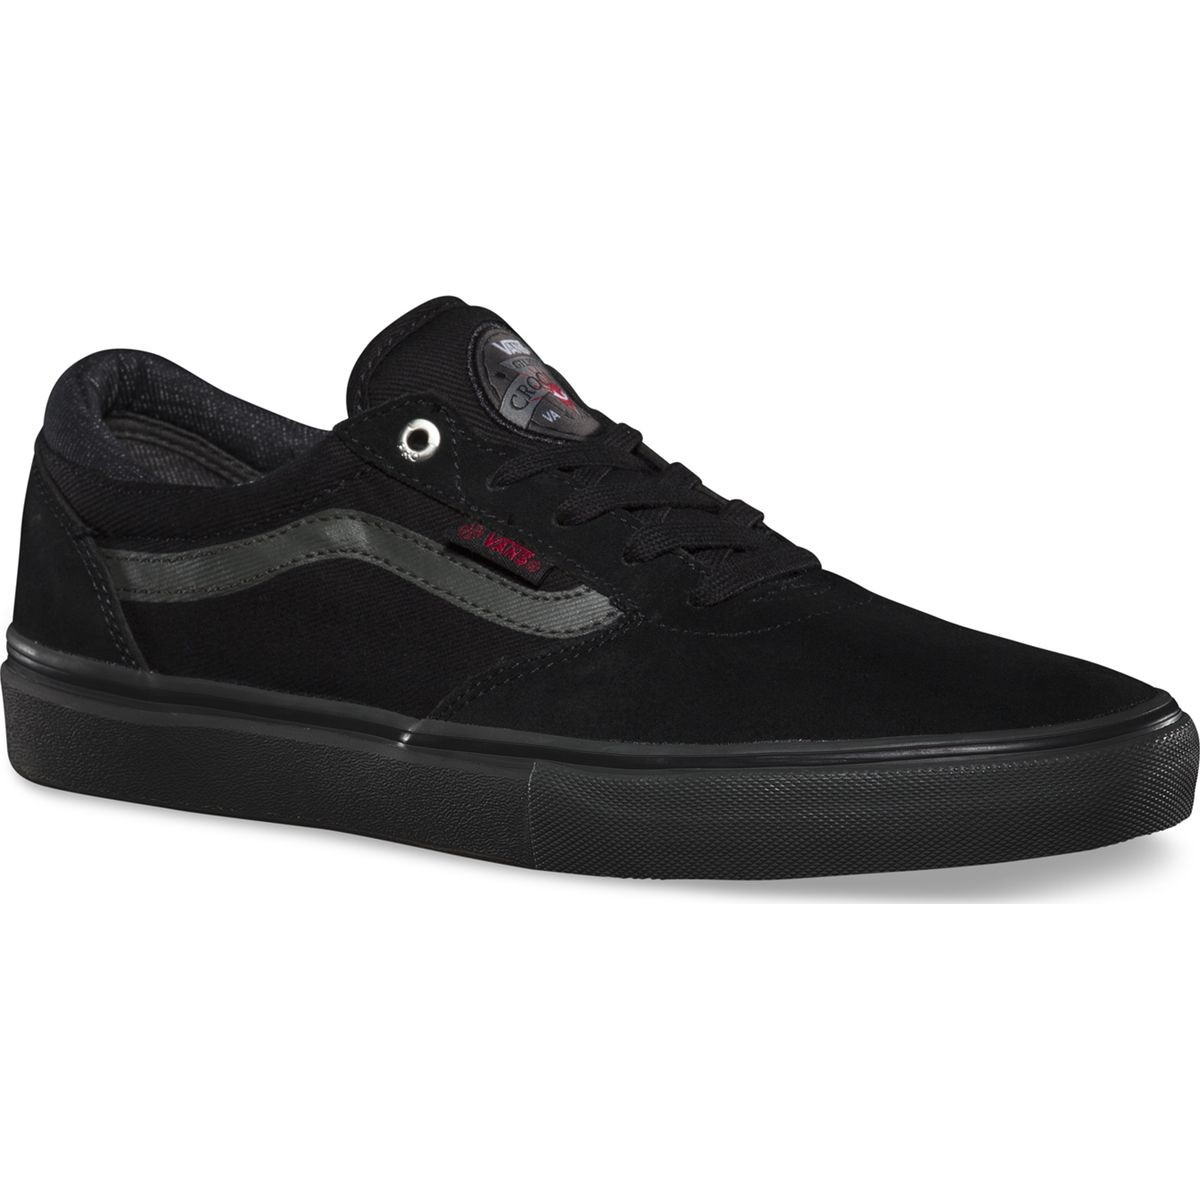 Vans Gilbert Crockett Pro Shoes - Independent